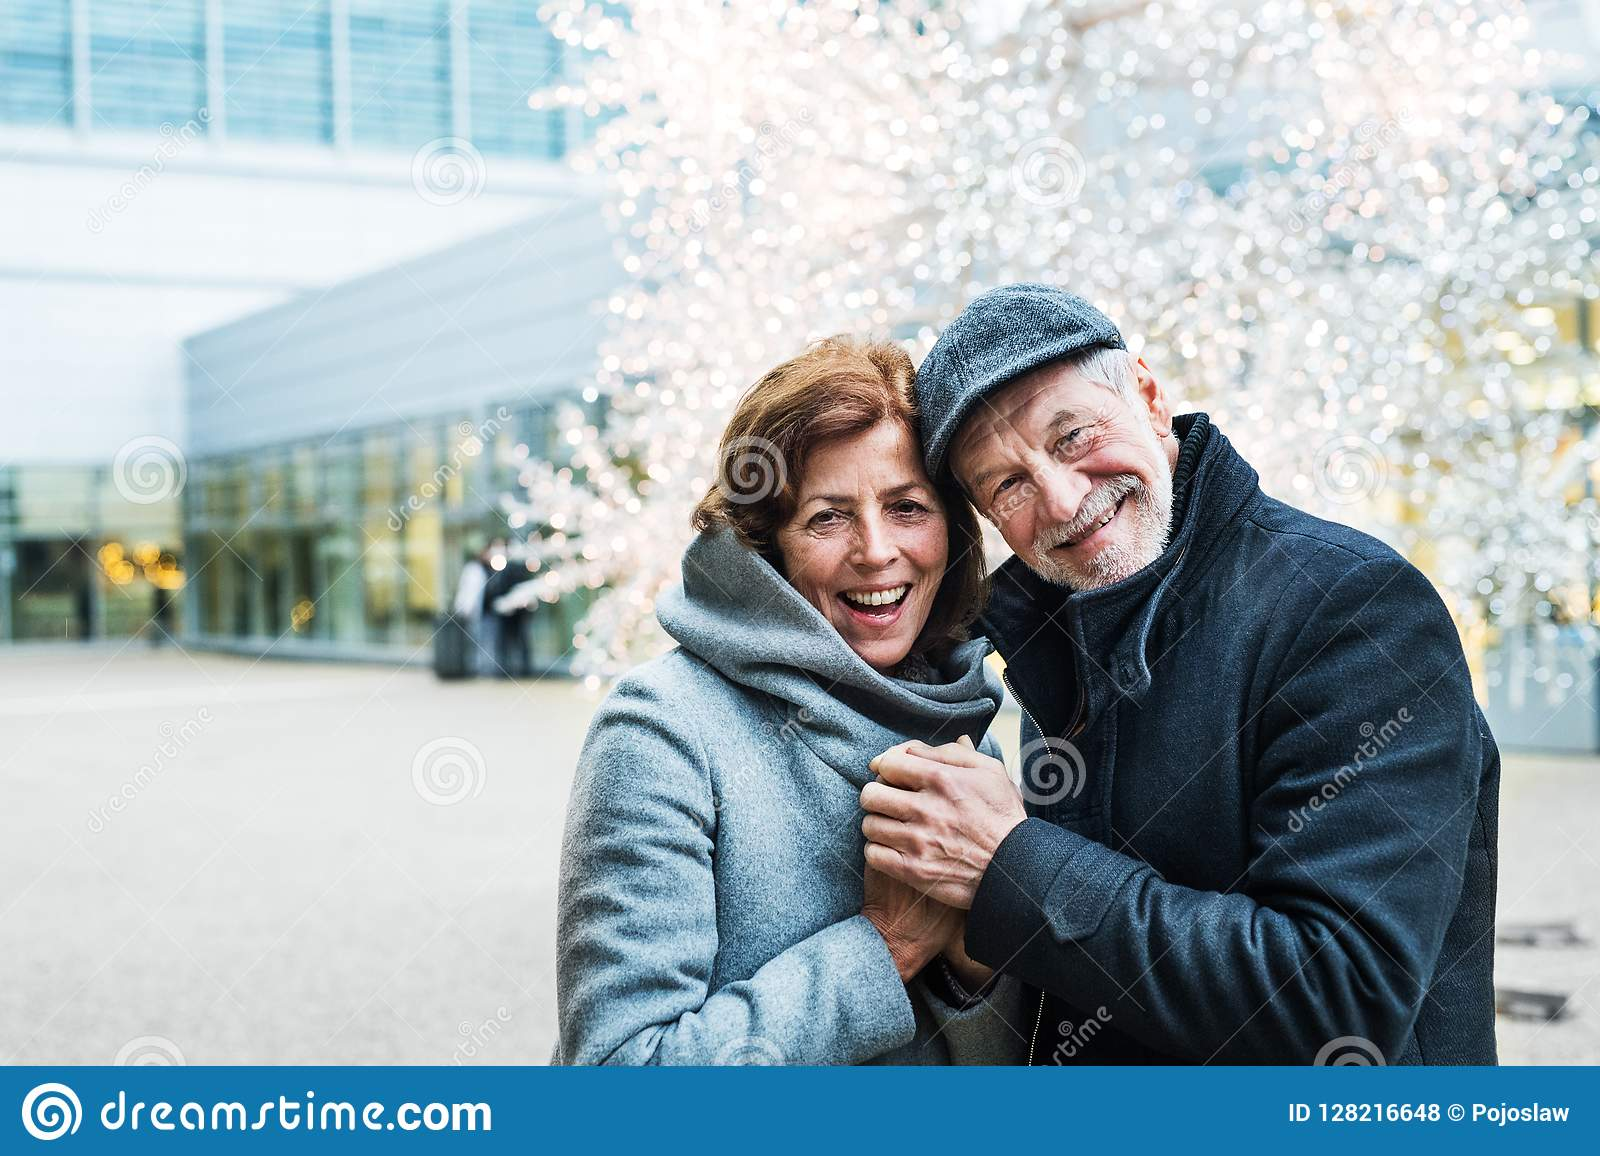 A senior couple standing outdoors in front of shopping center at Christmas time.